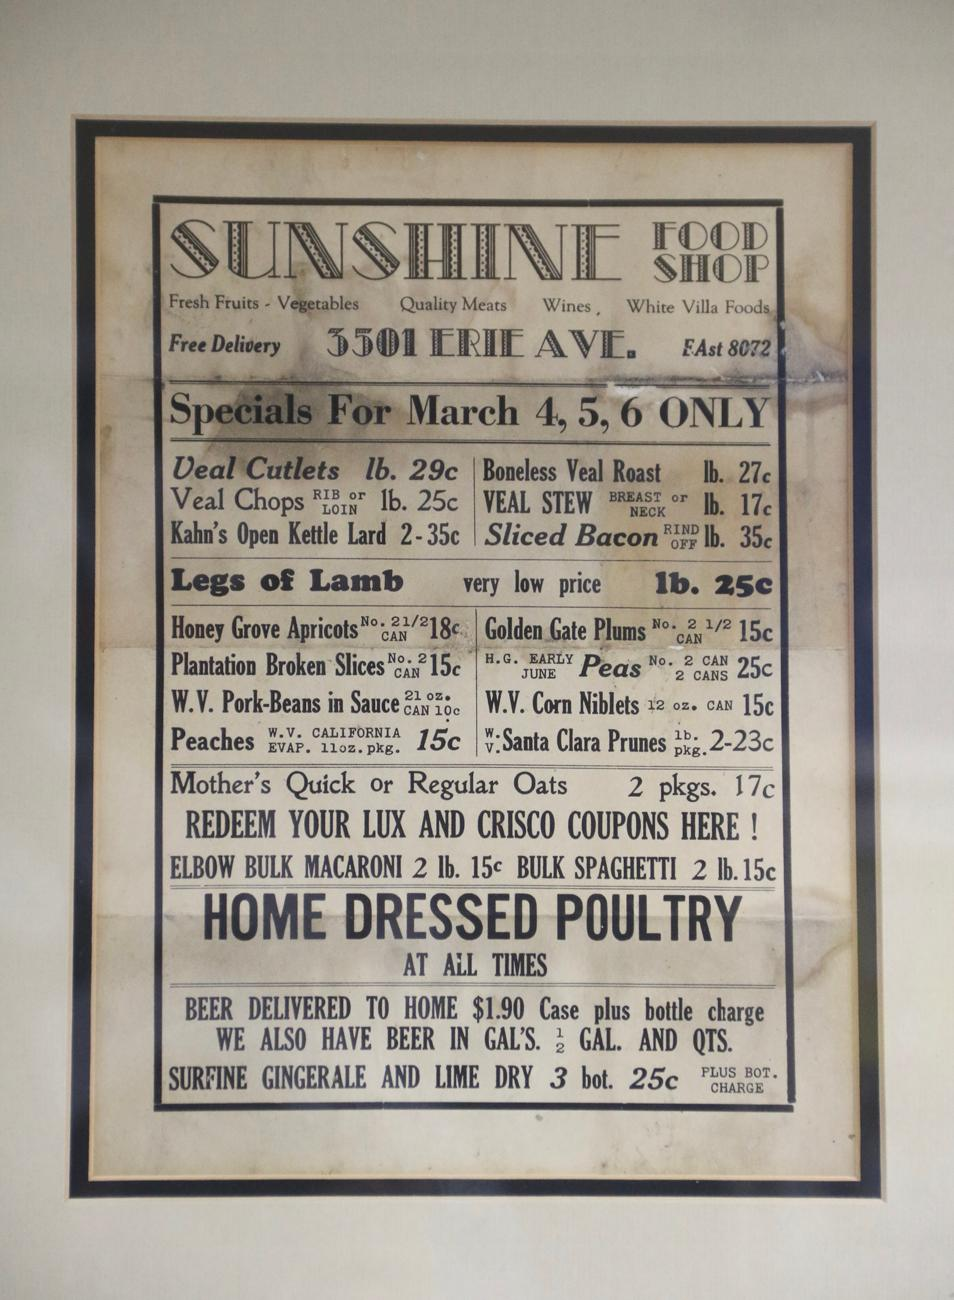 Sunshine traces its roots to a historic Hyde Park business that was eventually acquired by Pam. Hanging on the wall is a vintage menu found by one of her family members. The current incarnation honors the tradition of being a friendly, neighborhood staple not just in location, but practice as well. / Image: Ronny Salerno // Published: 4.25.19